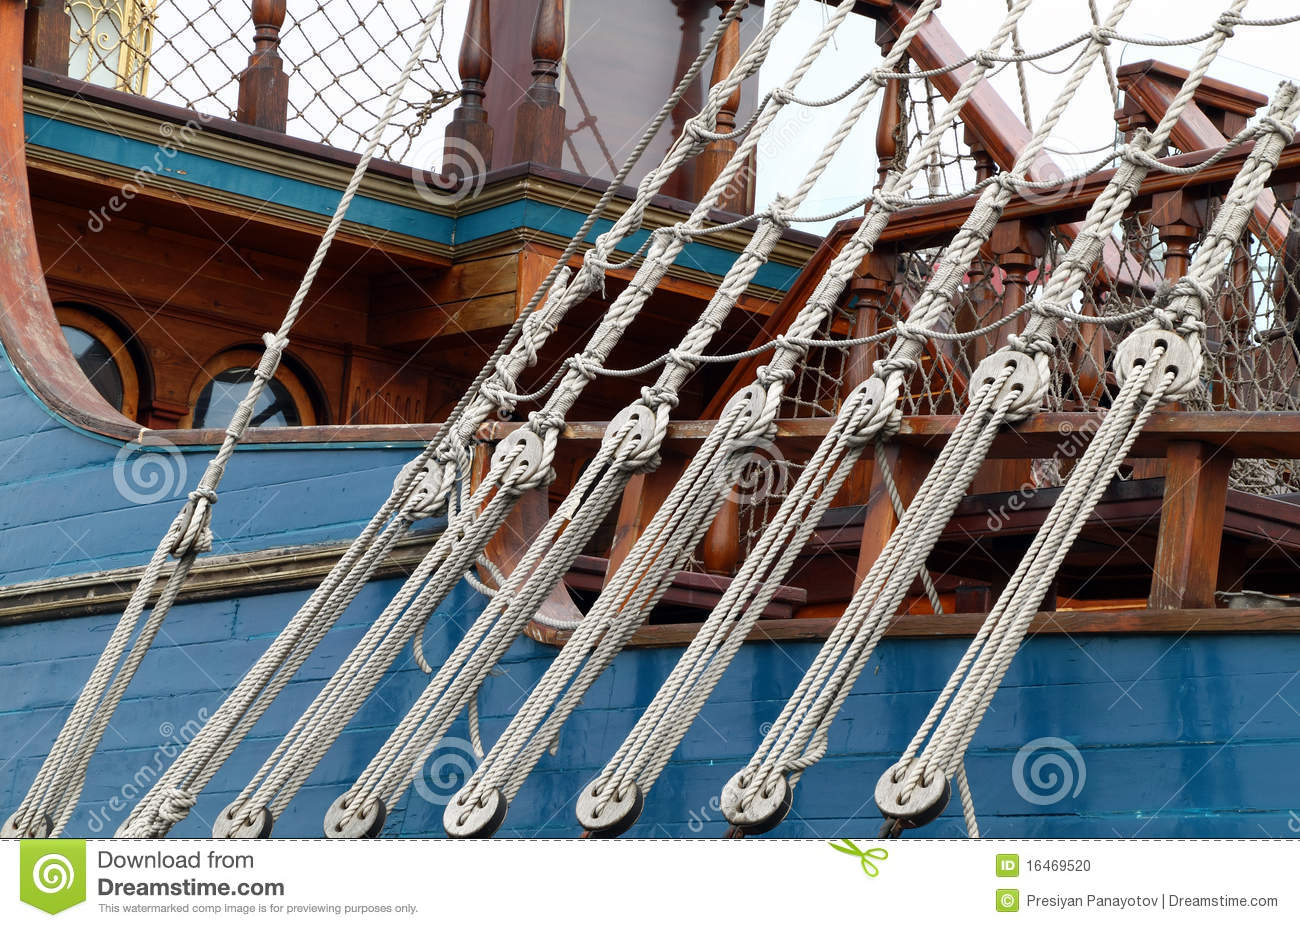 Detail of a rope ladder stock photo. Image of ladder - 16469520 for Rope Ladder Ship  55dqh